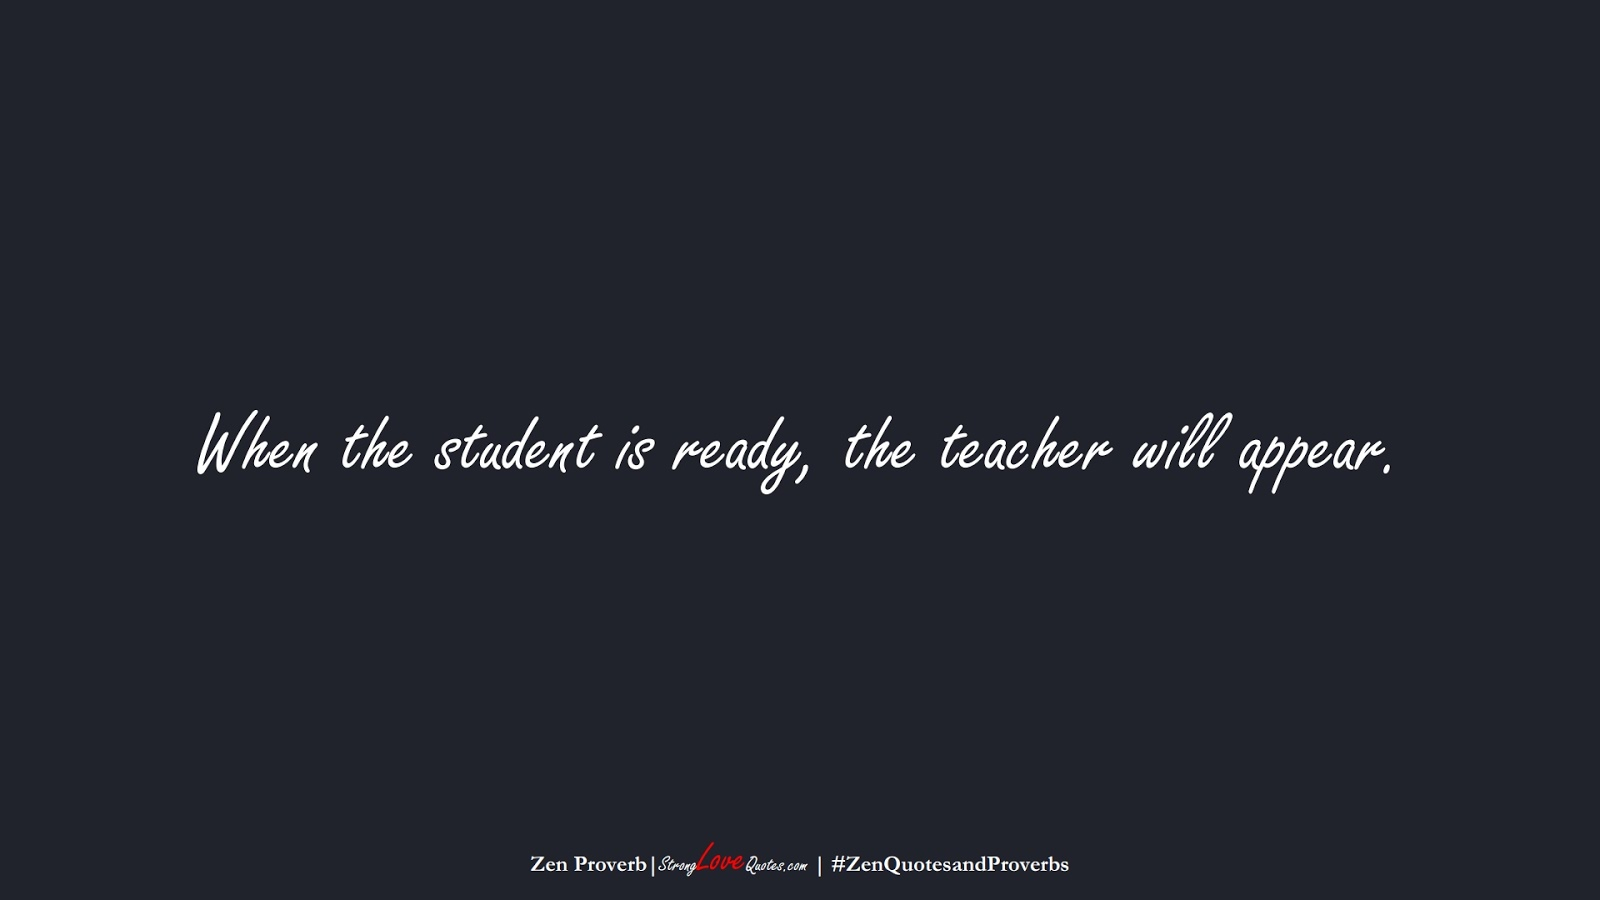 When the student is ready, the teacher will appear. (Zen Proverb);  #ZenQuotesandProverbs